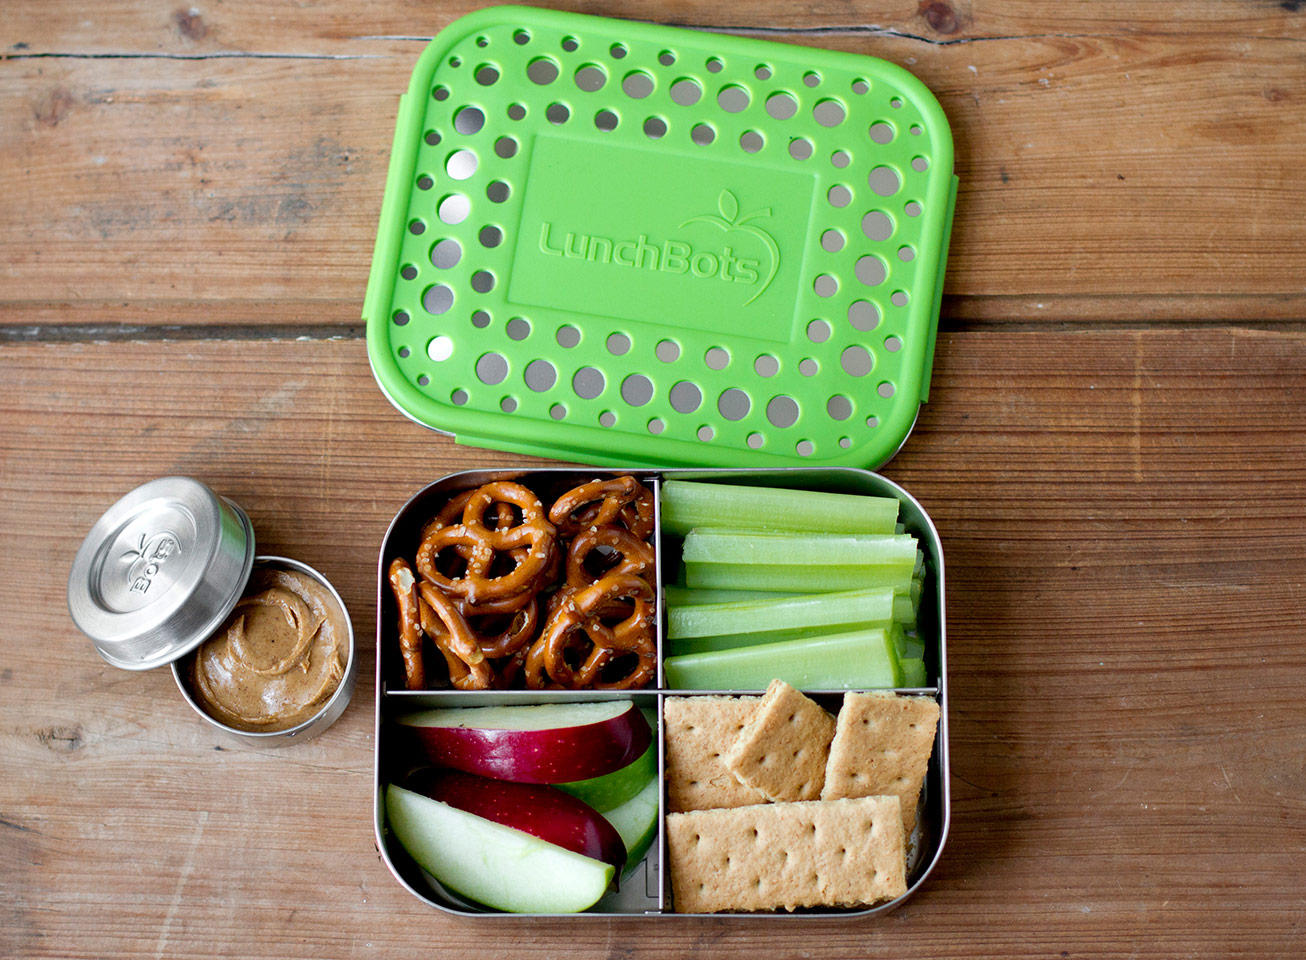 lunchbots stainless steel bento